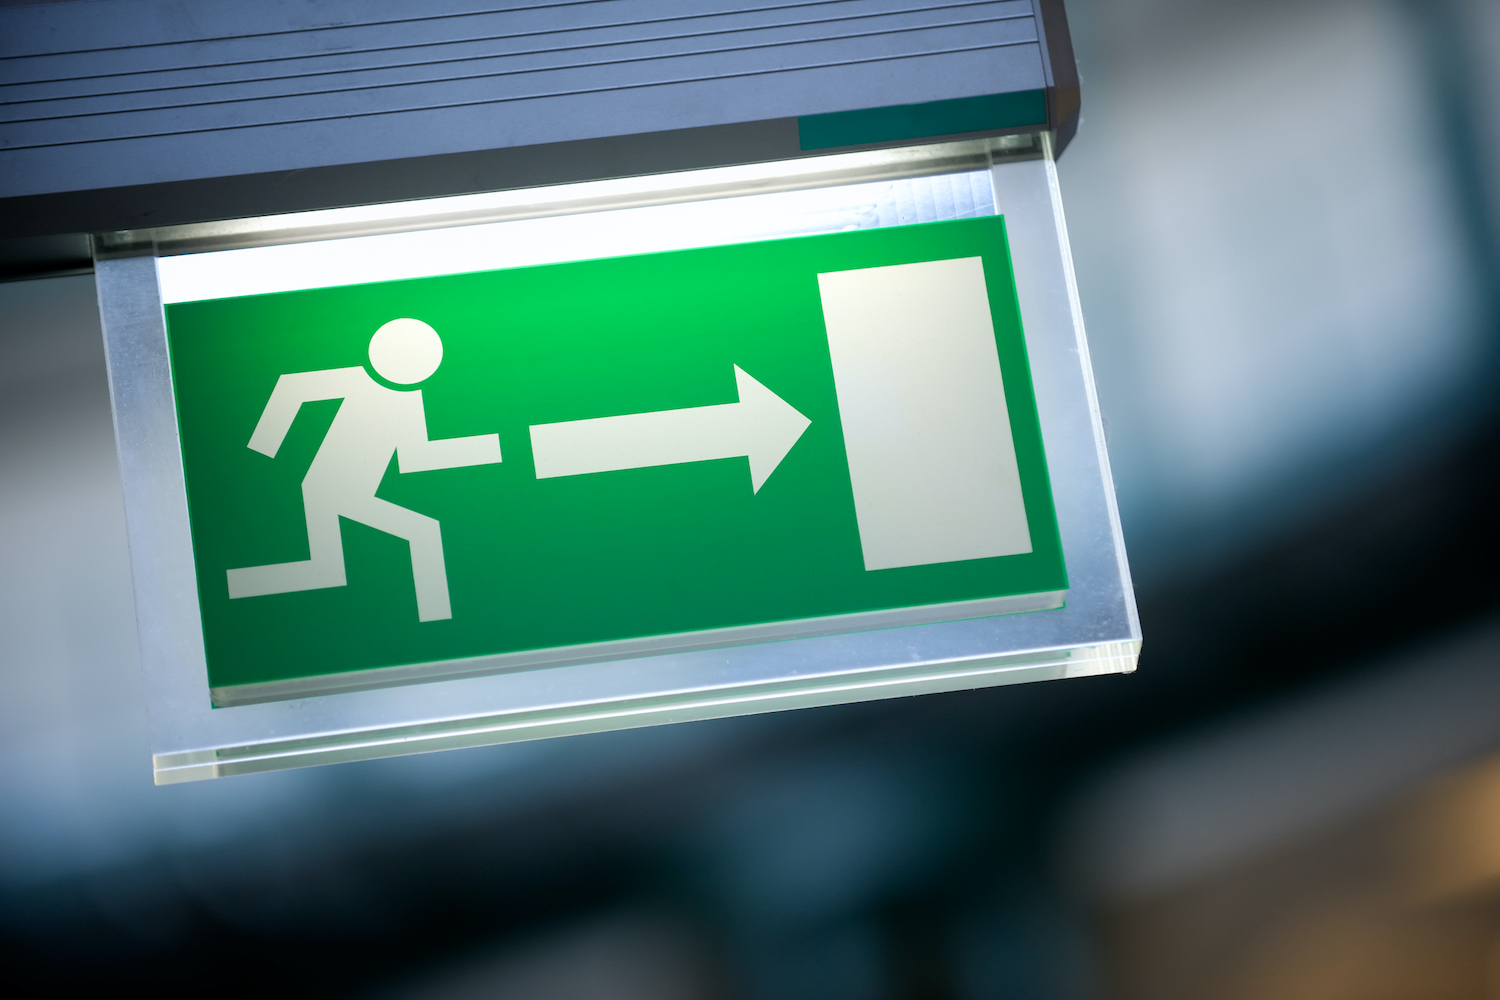 lighted fire exit sign